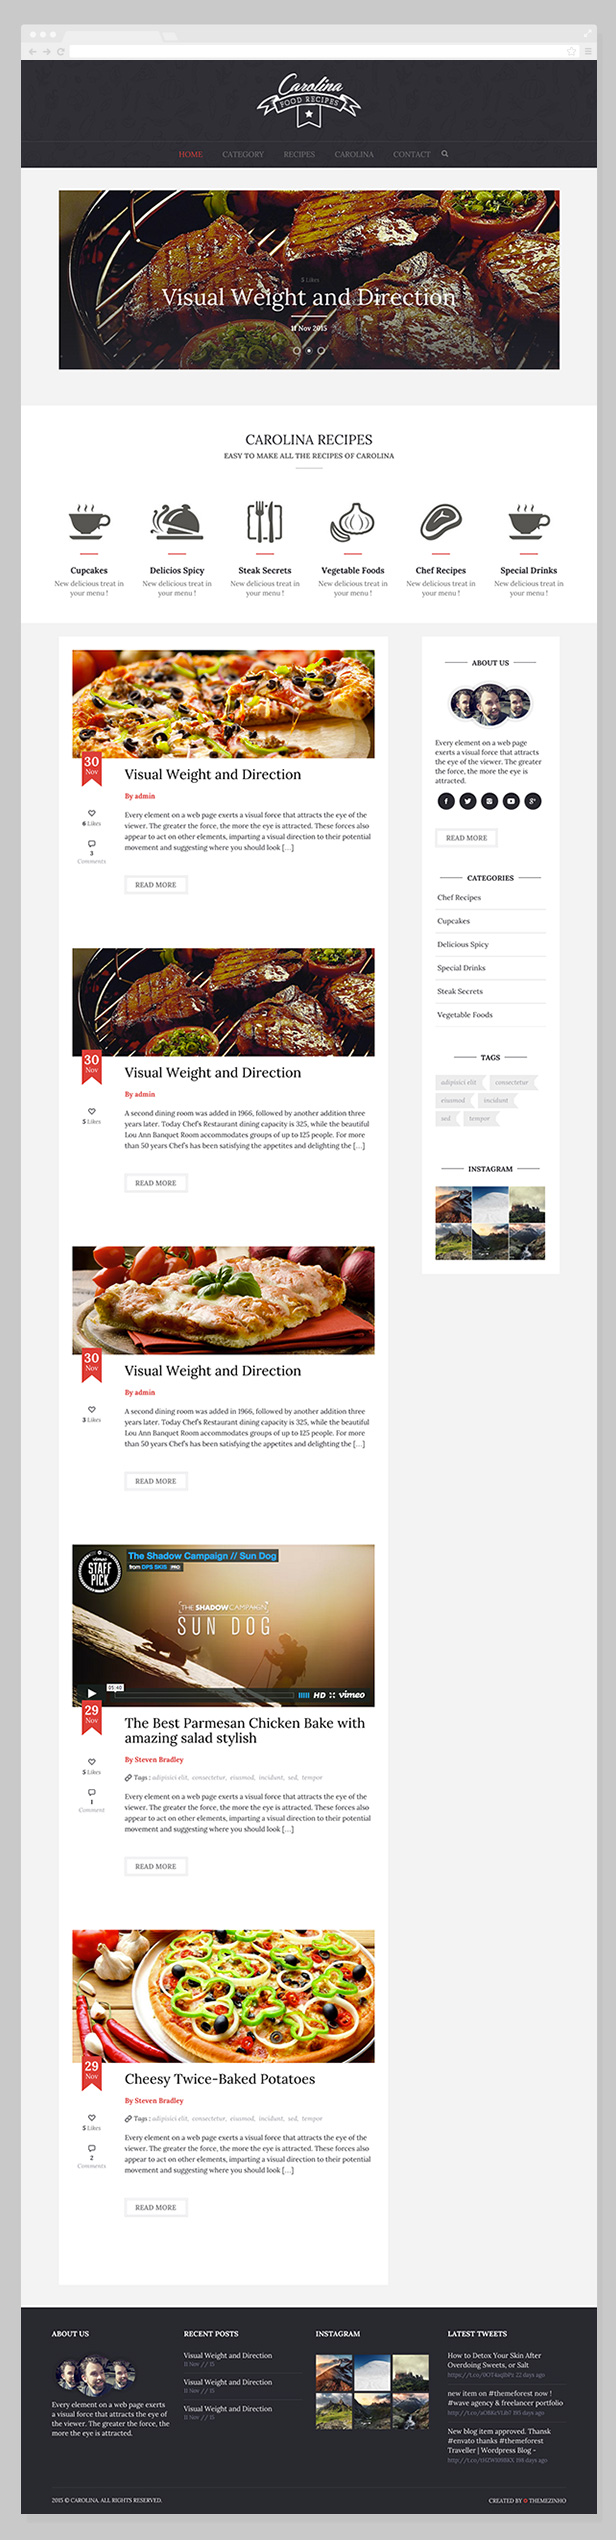 Carolina - Homemade Recipes WordPress Theme